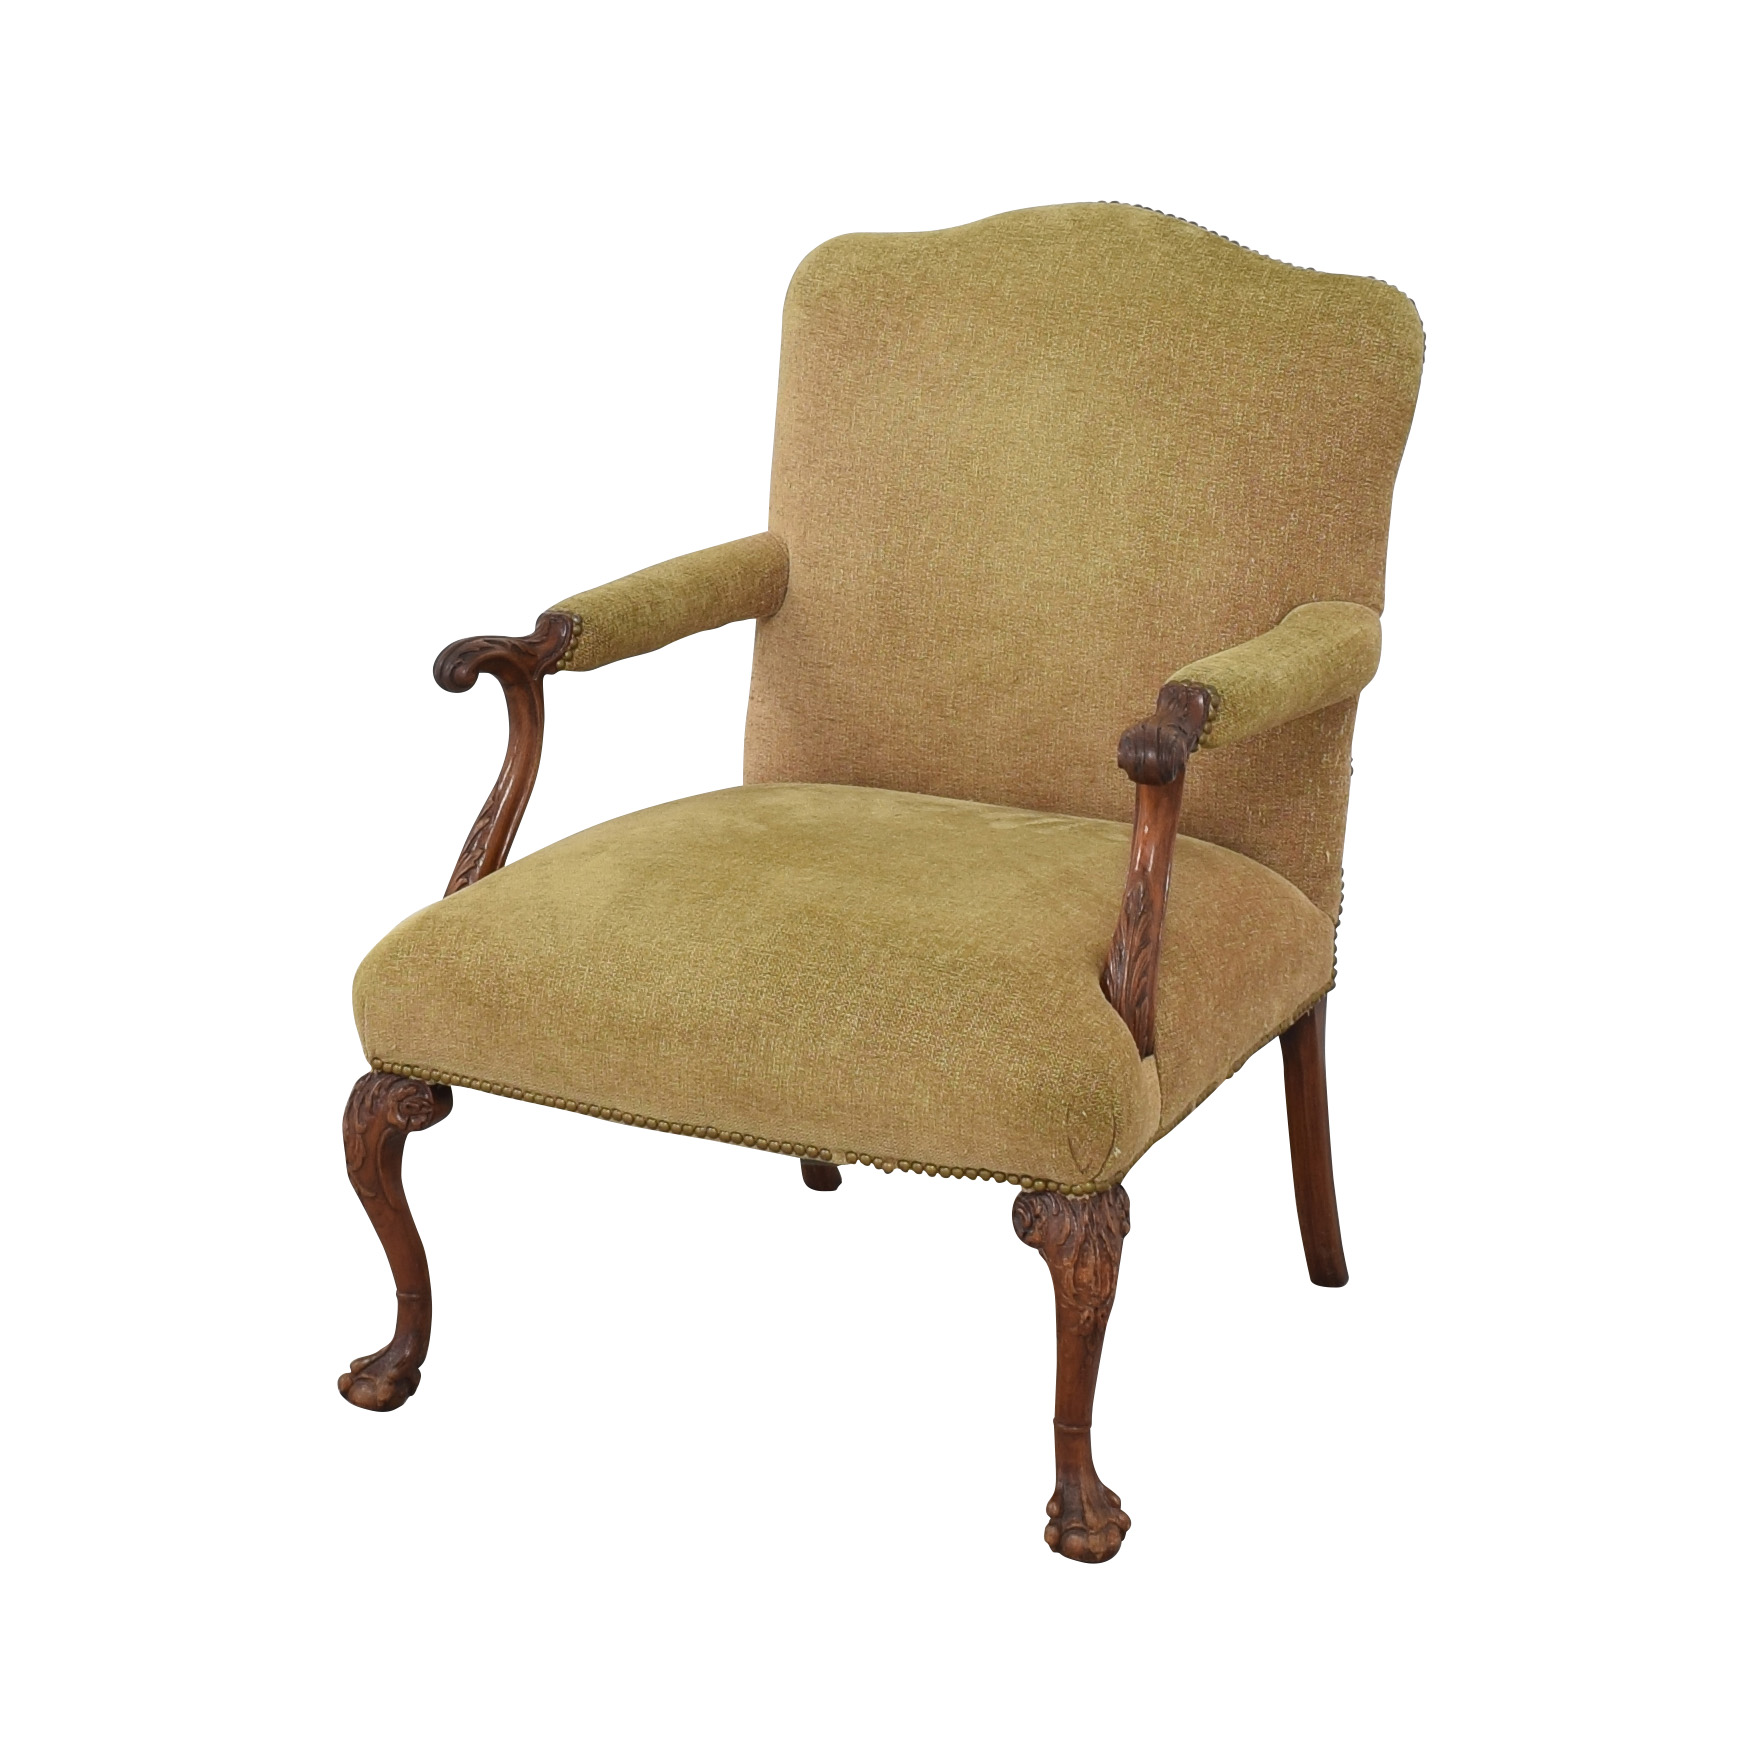 Regency Regency Upholstered Chippendale Occasional Chair coupon